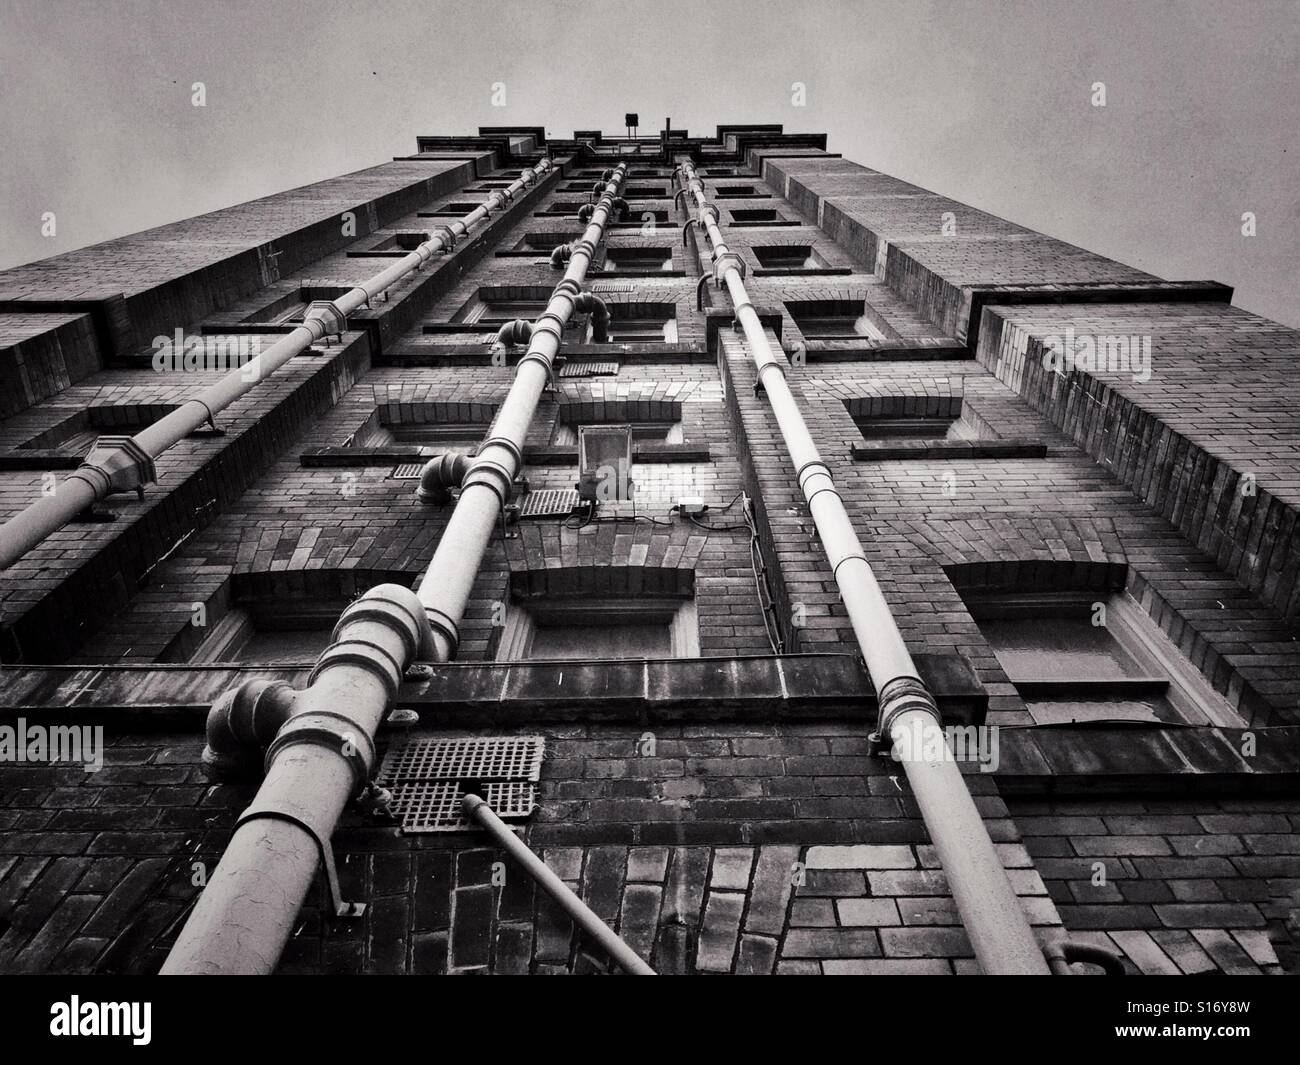 Pear Mill, Stockport - Stock Image